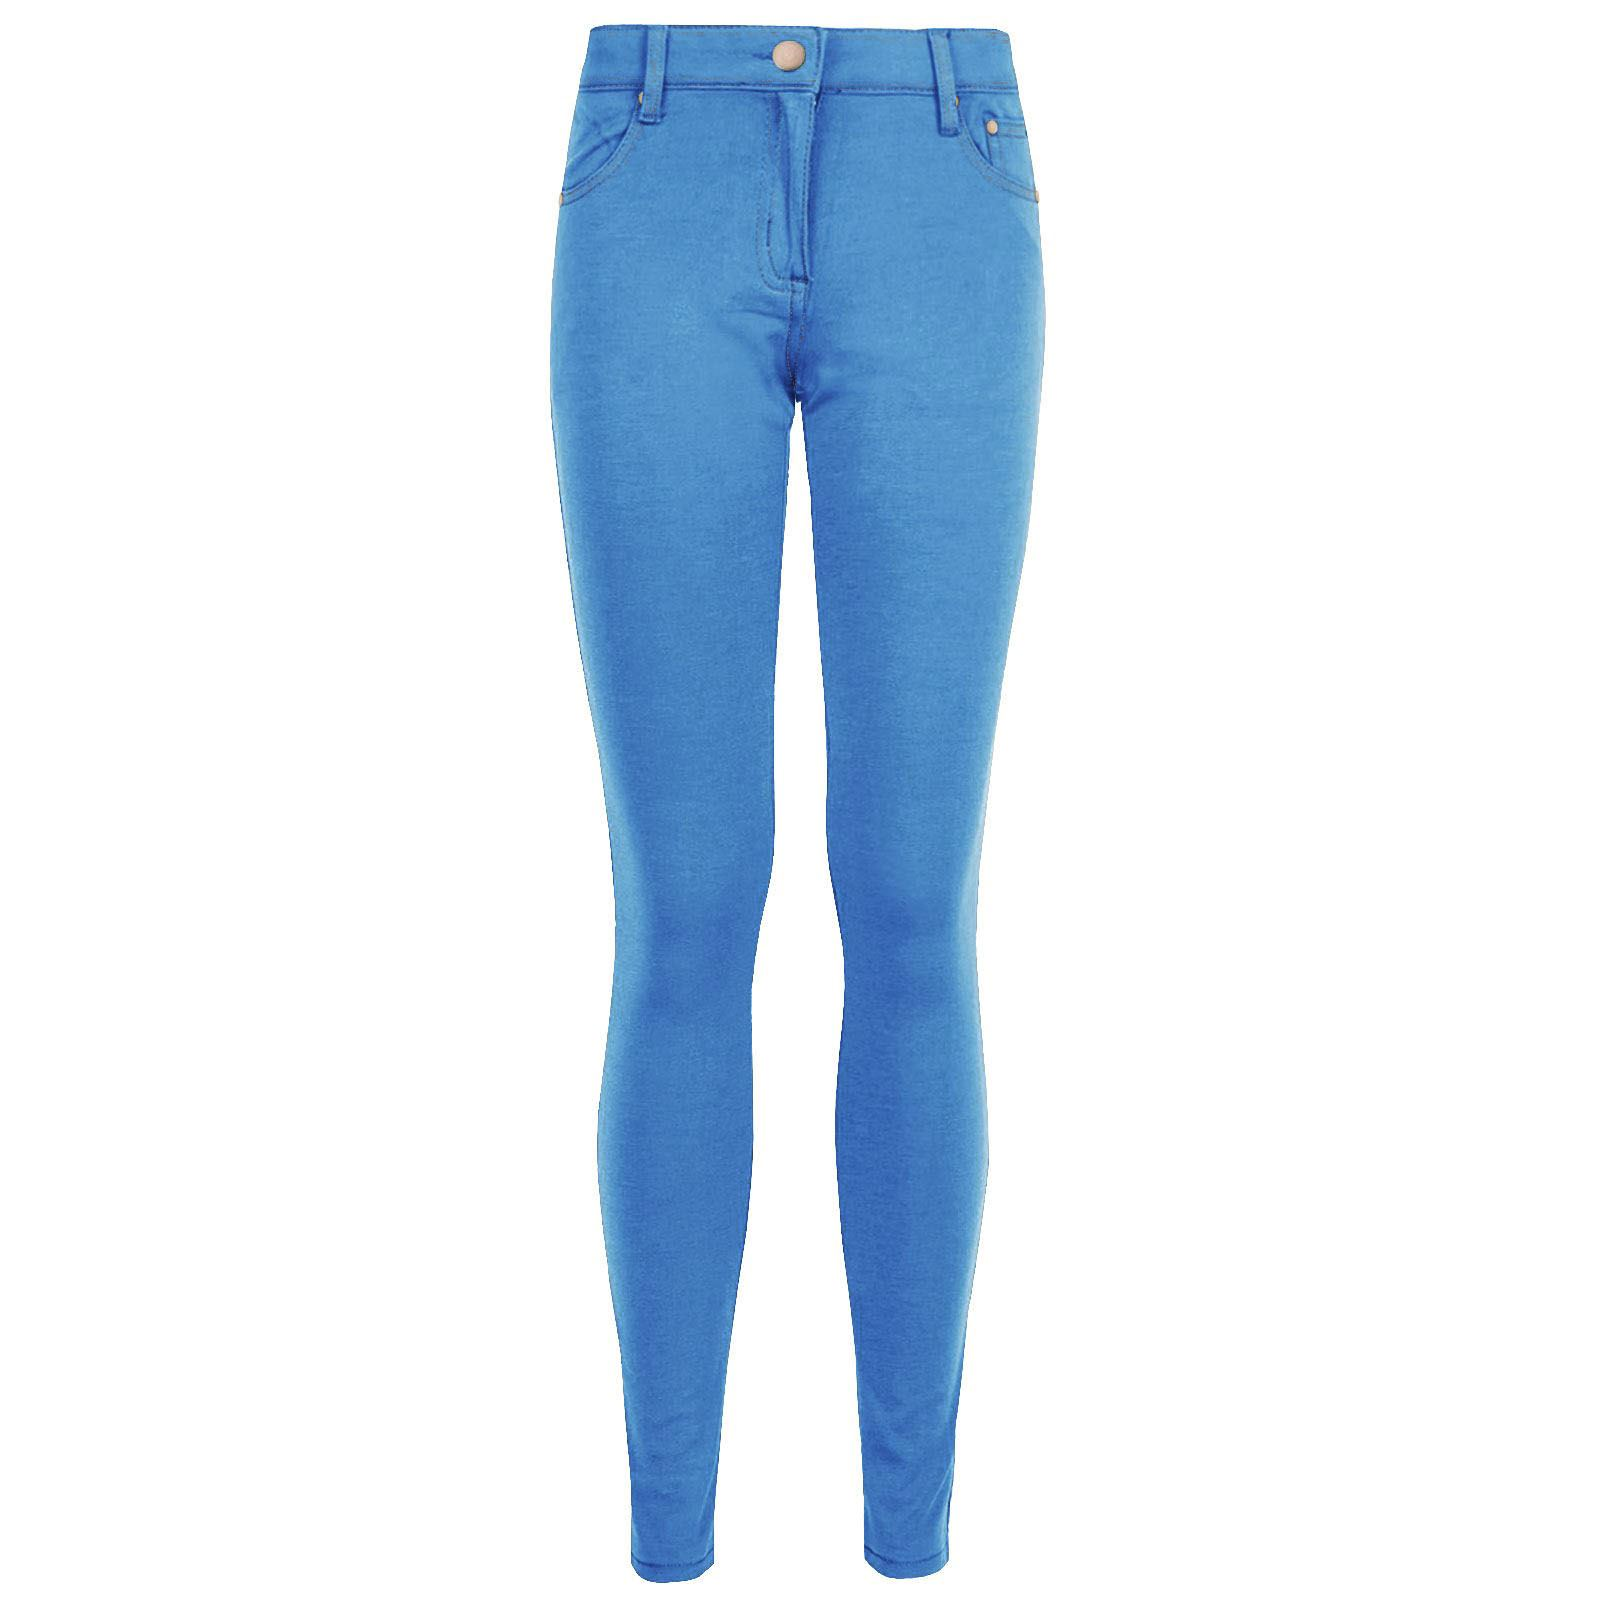 WOMENS SKINNY JEANS STRETCHY JEGGINGS LADIES FIT COLOURED TROUSERS SLIM PANTS